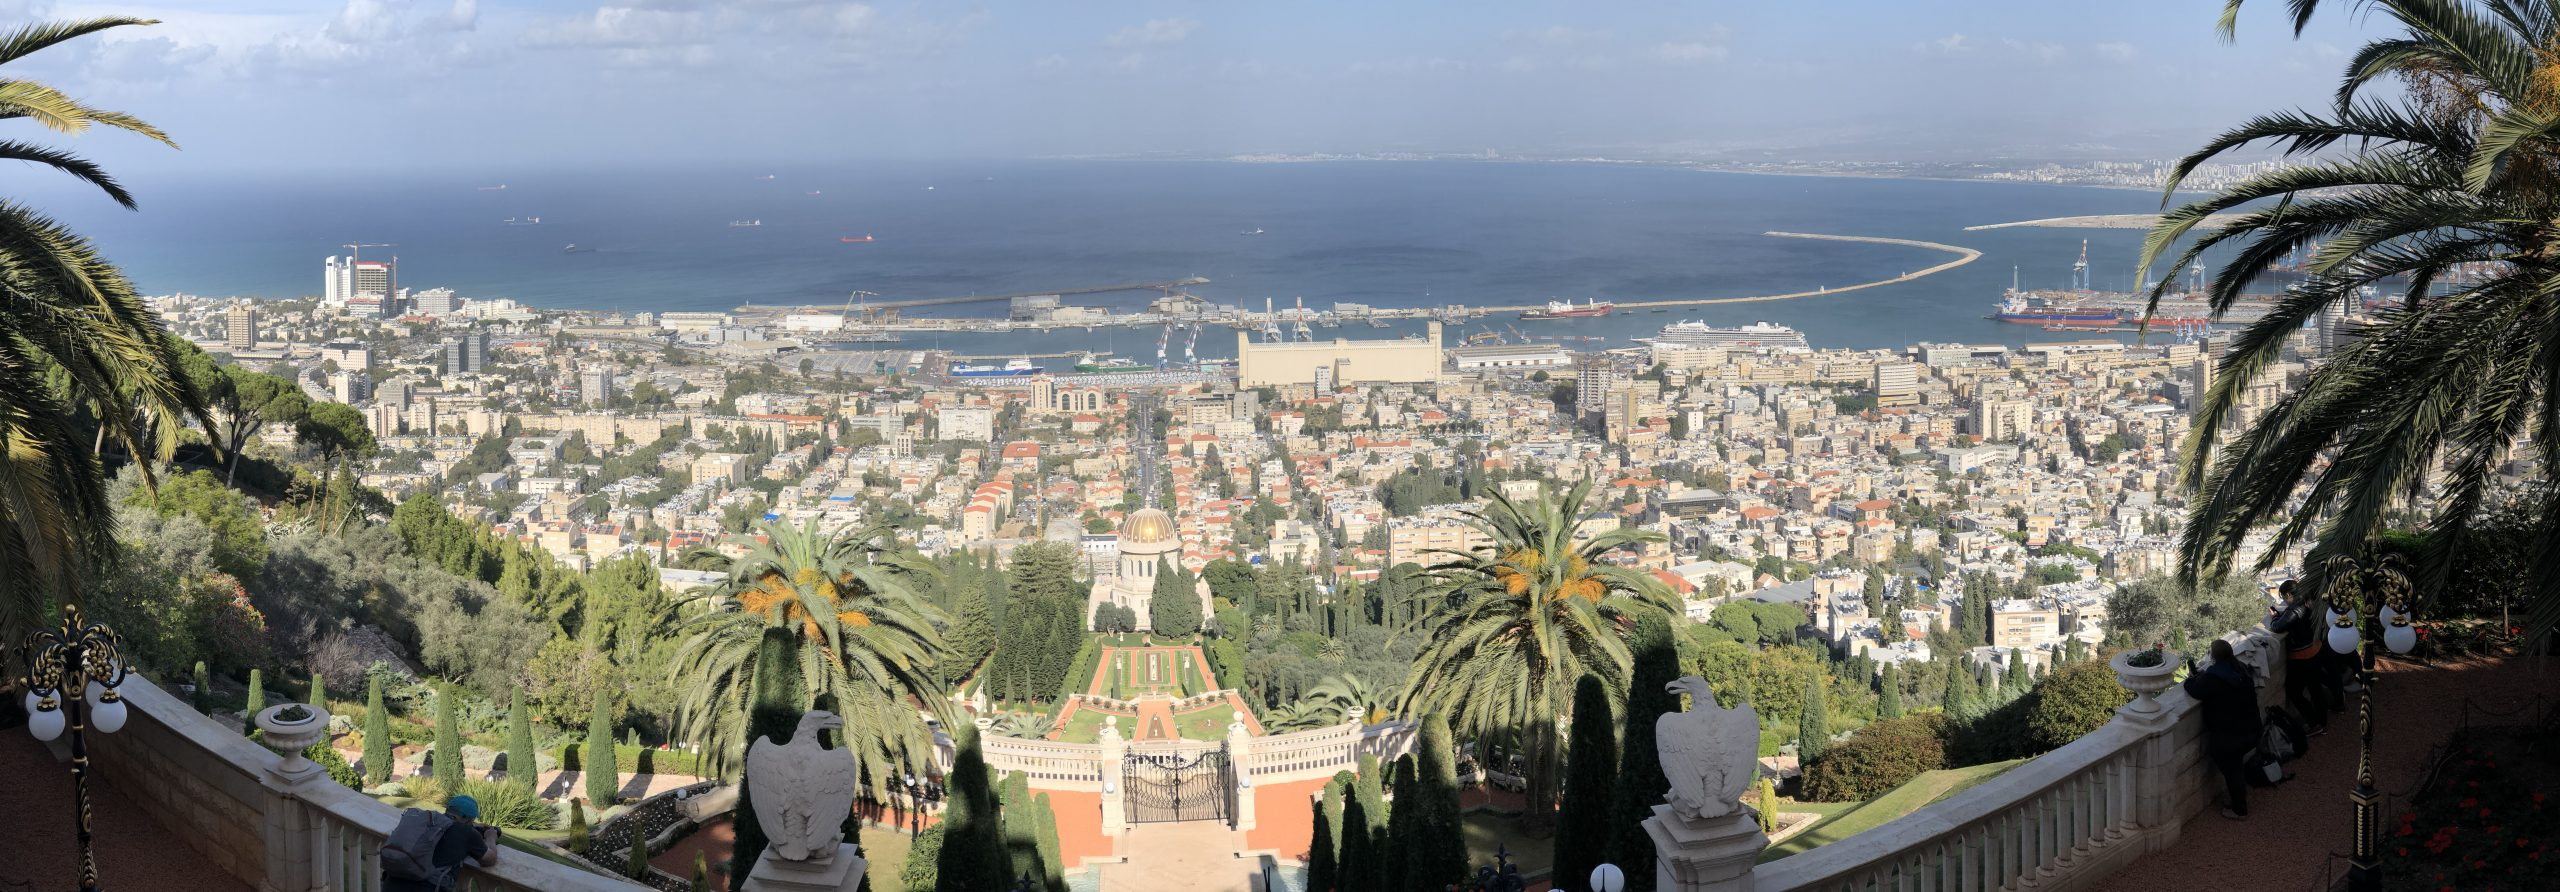 Haifa Bay Panorama